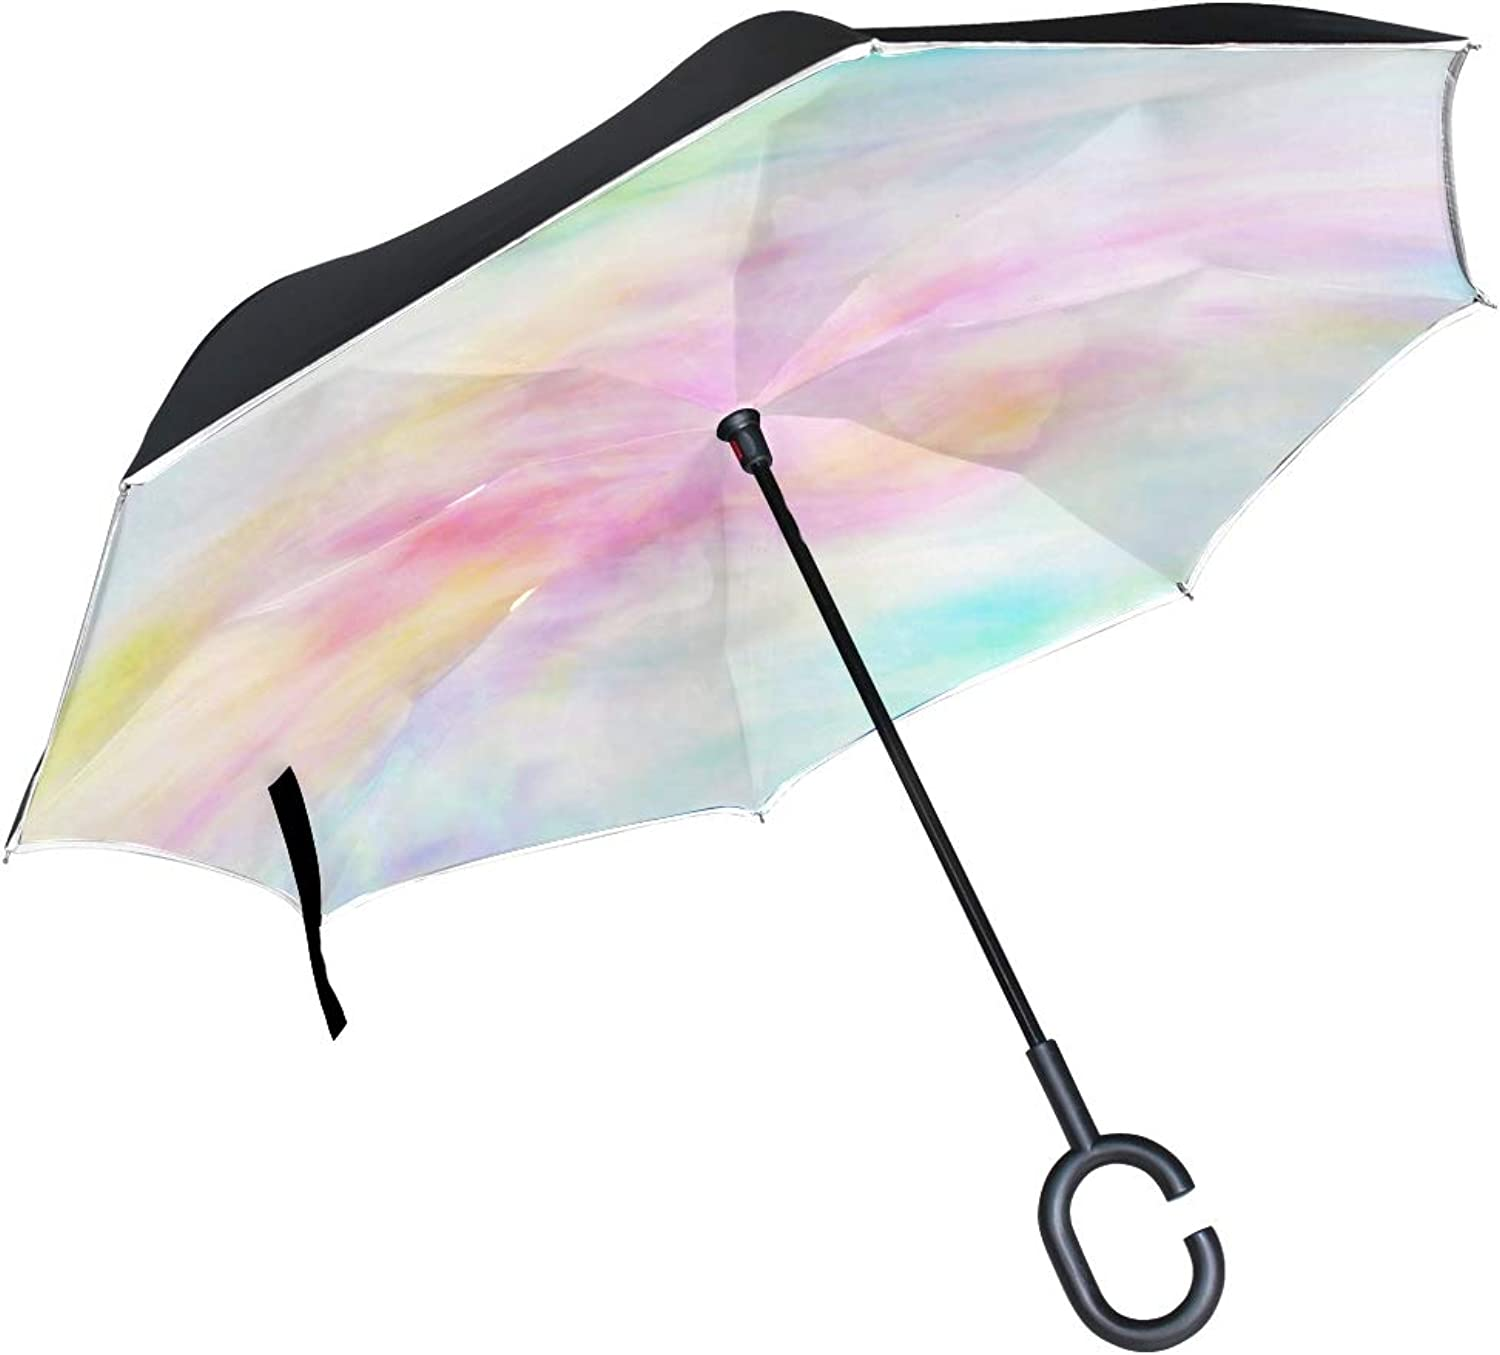 Double Layer Ingreened Abstract Silky in Pink and bluee Pastel Umbrellas Reverse Folding Umbrella Windproof Uv Predection Big Straight Umbrella for Car Rain Outdoor with CShaped Handle